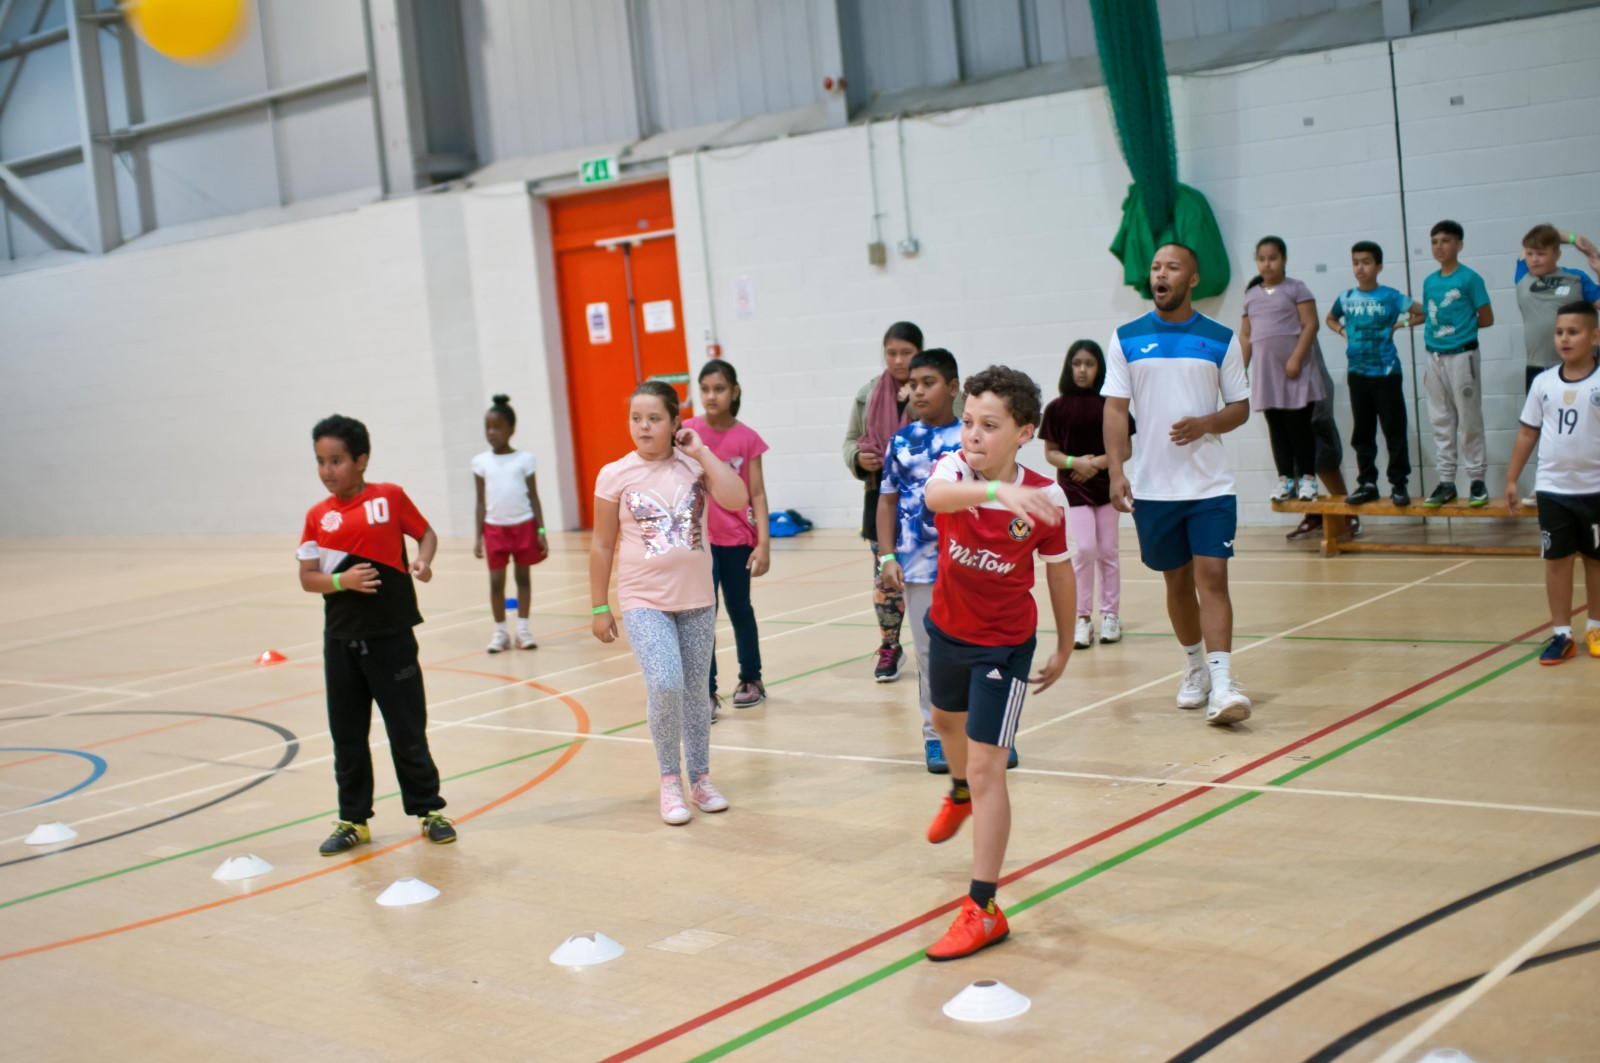 Group of children playing dodgeball